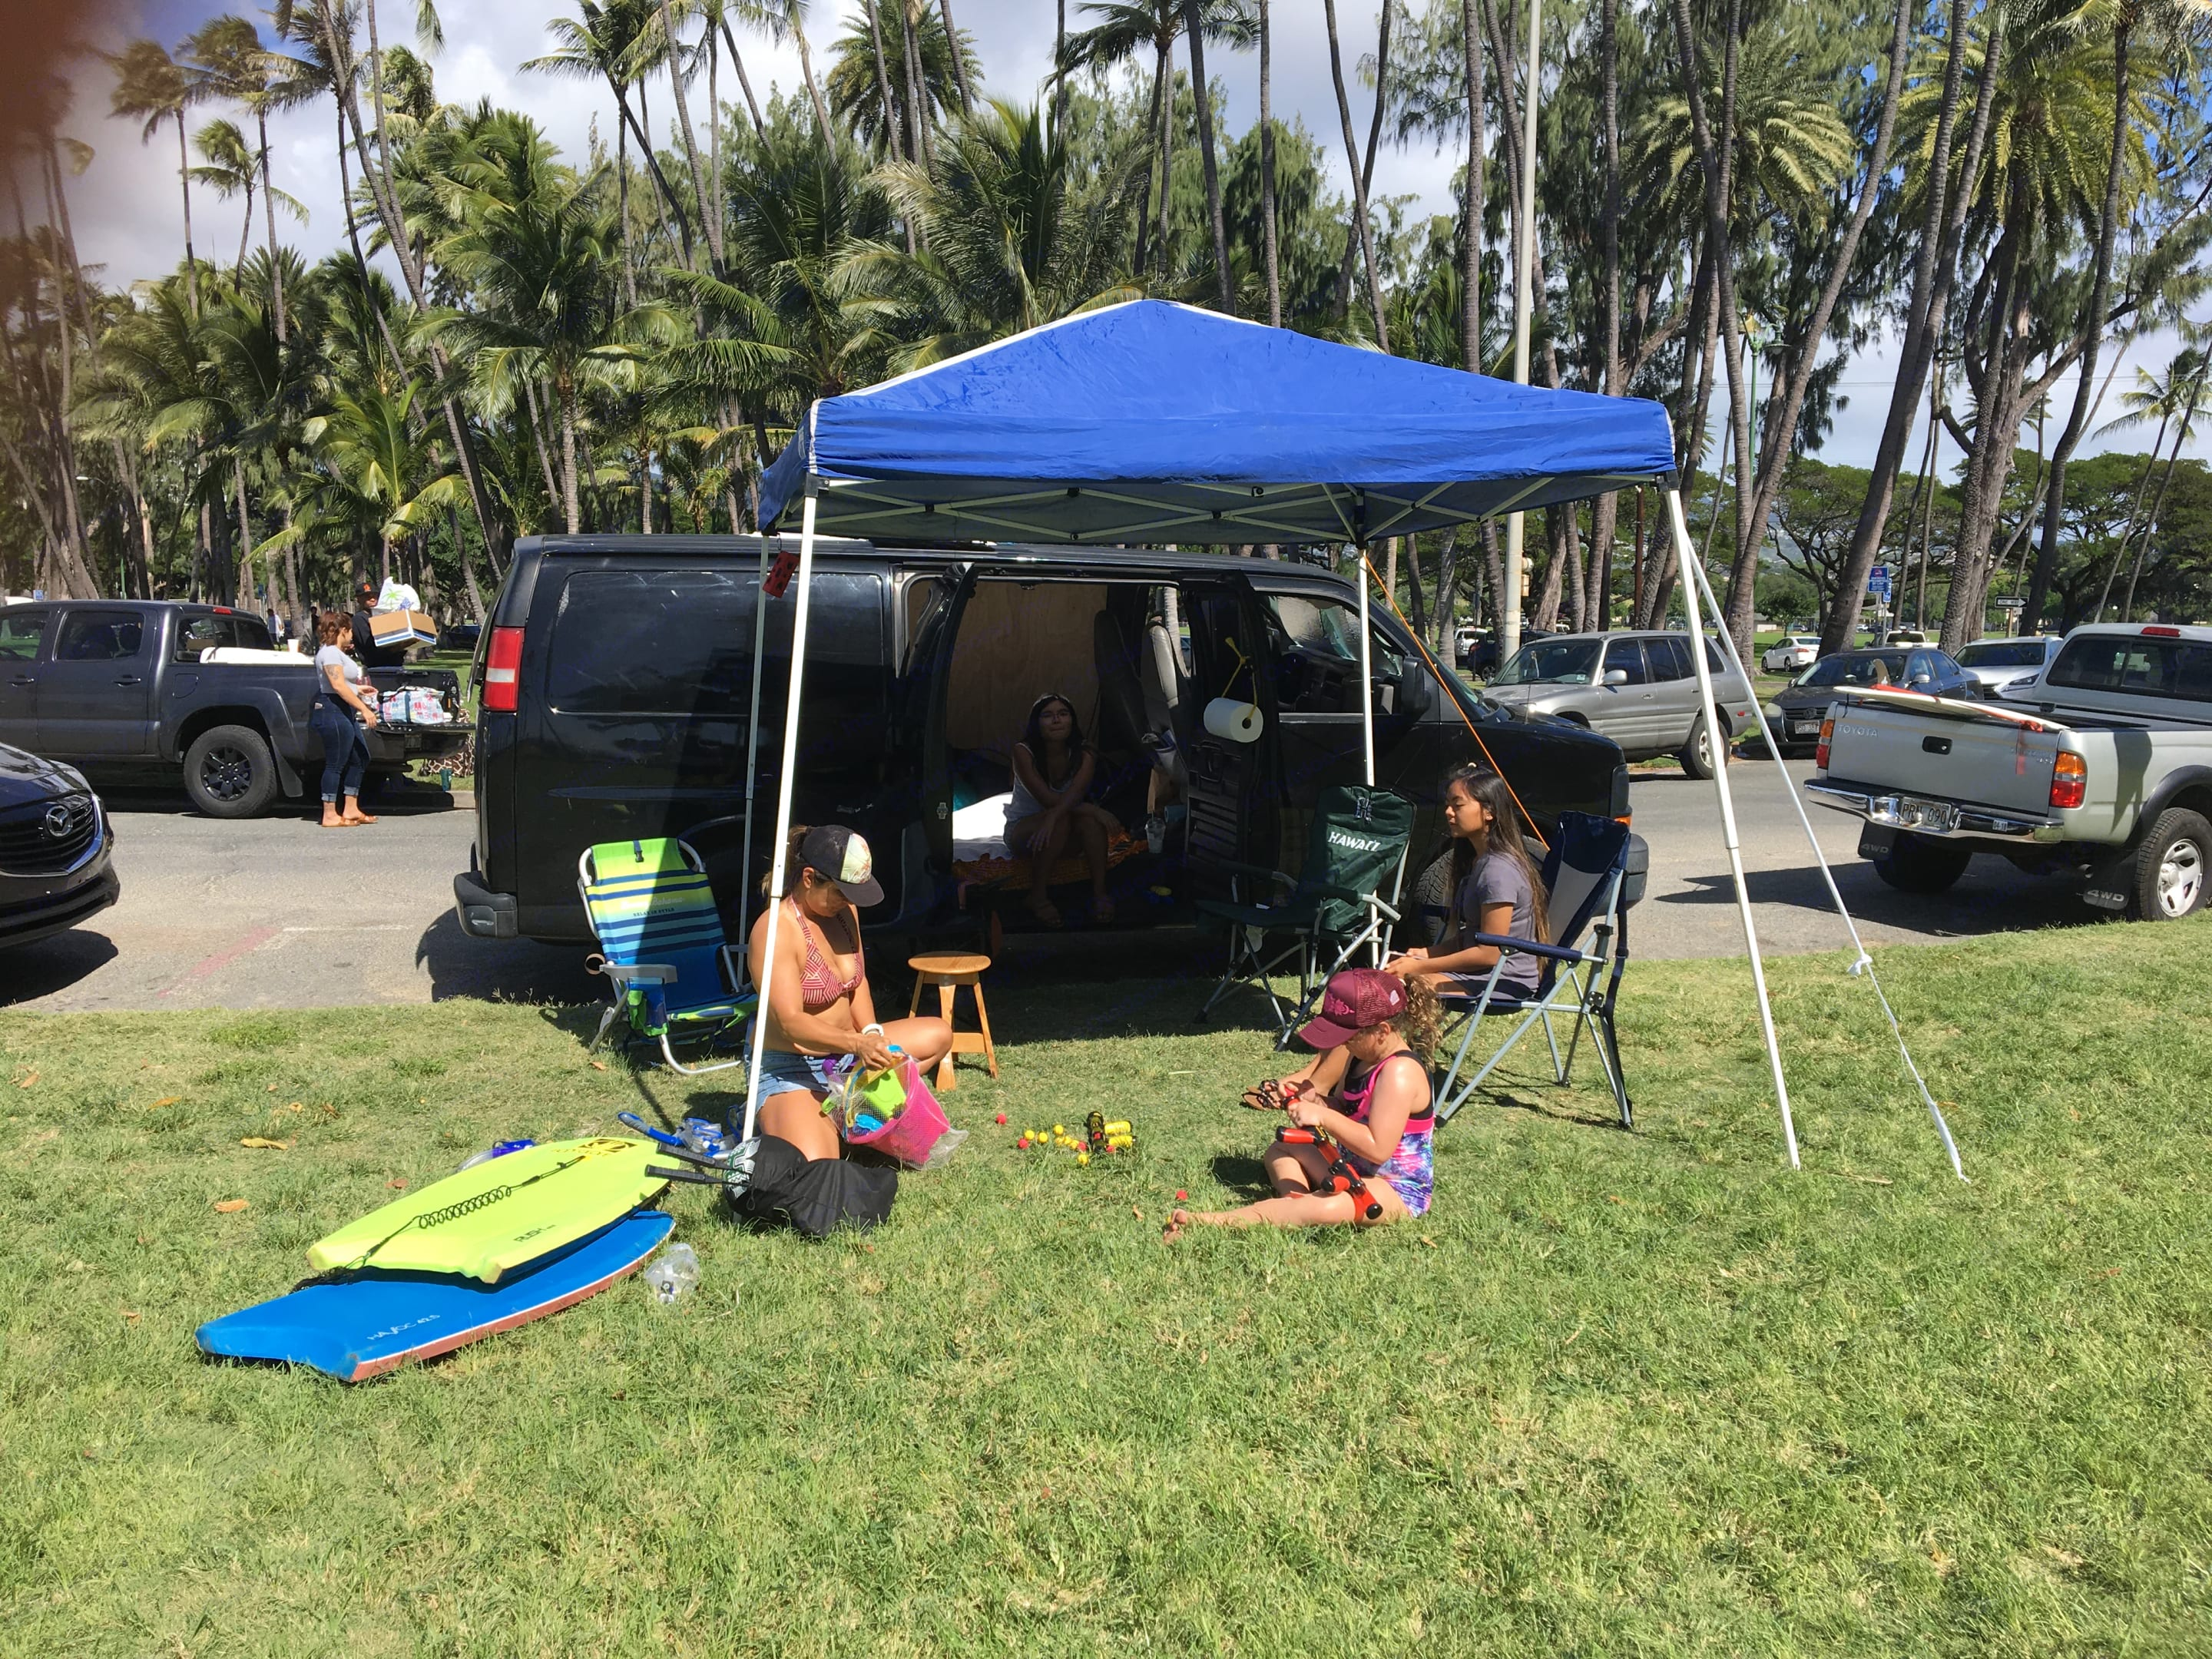 Lounge like a Rock Star, pop up tent is provided with rope and steaks to set up as an awning. This is Kaimana Beach in Waikiki.. Chevrolet Other 2004